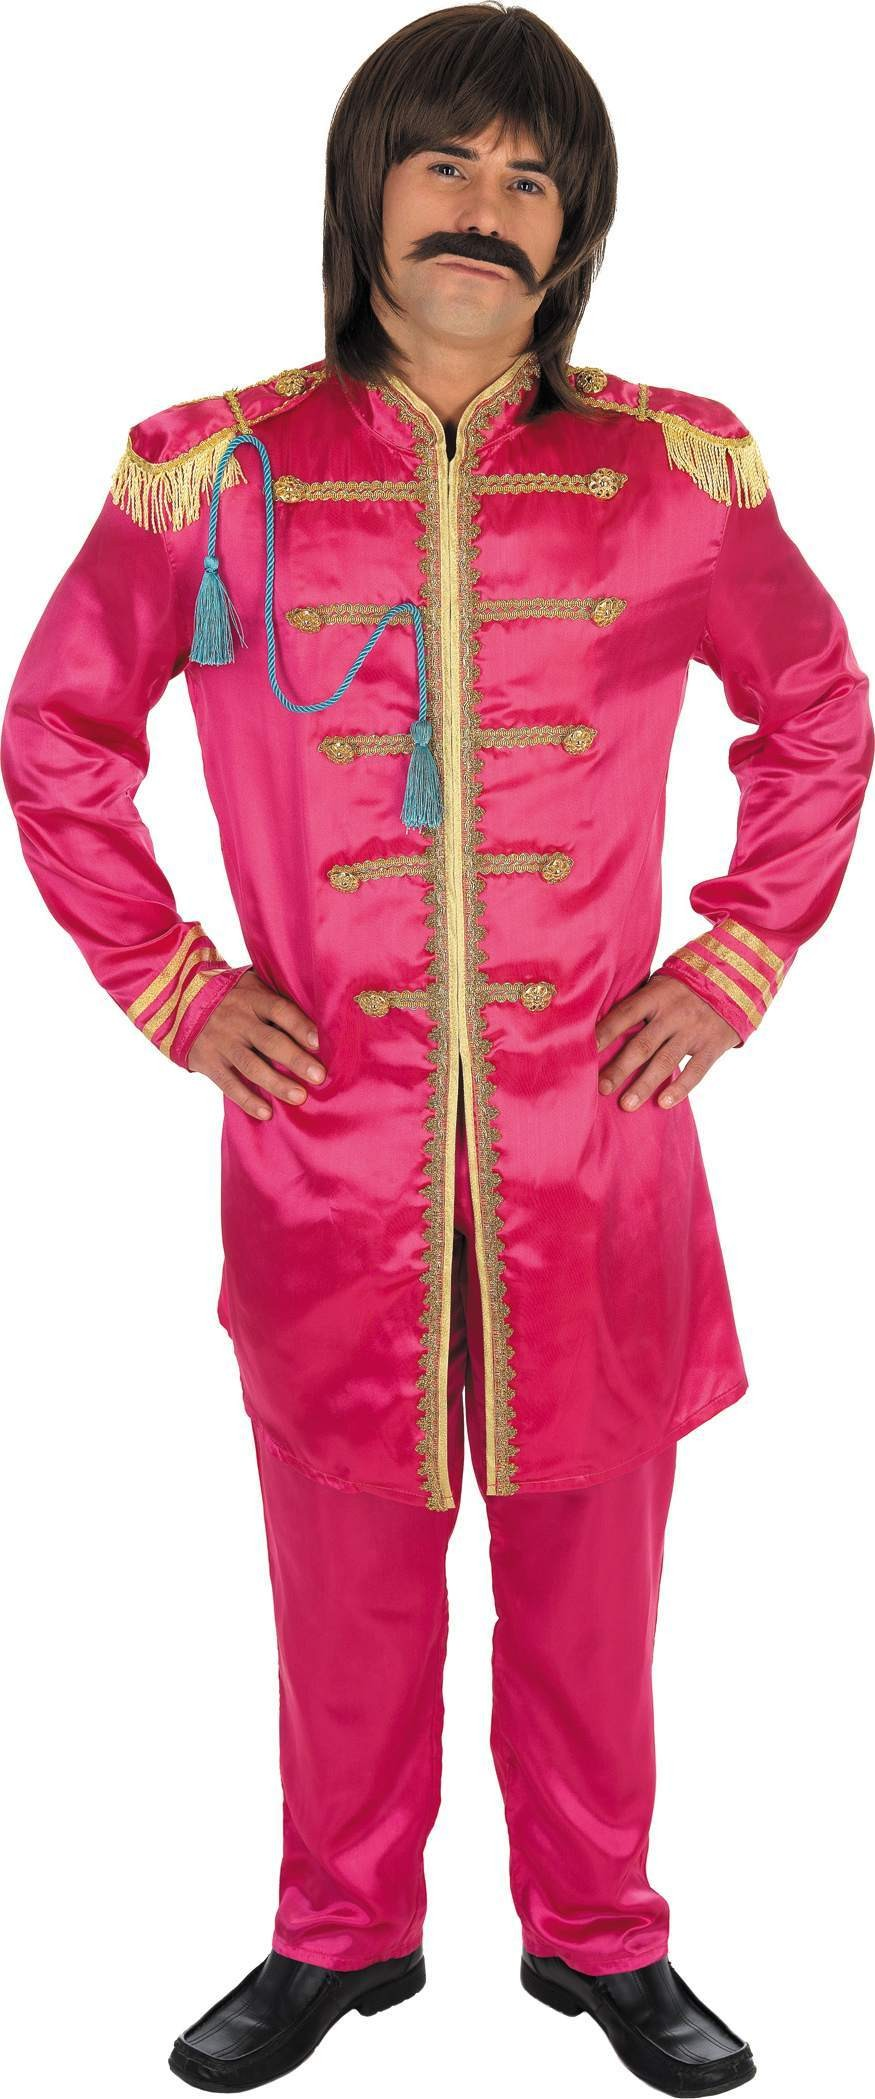 Pink Pop Sergeant Fancy Dress Costume